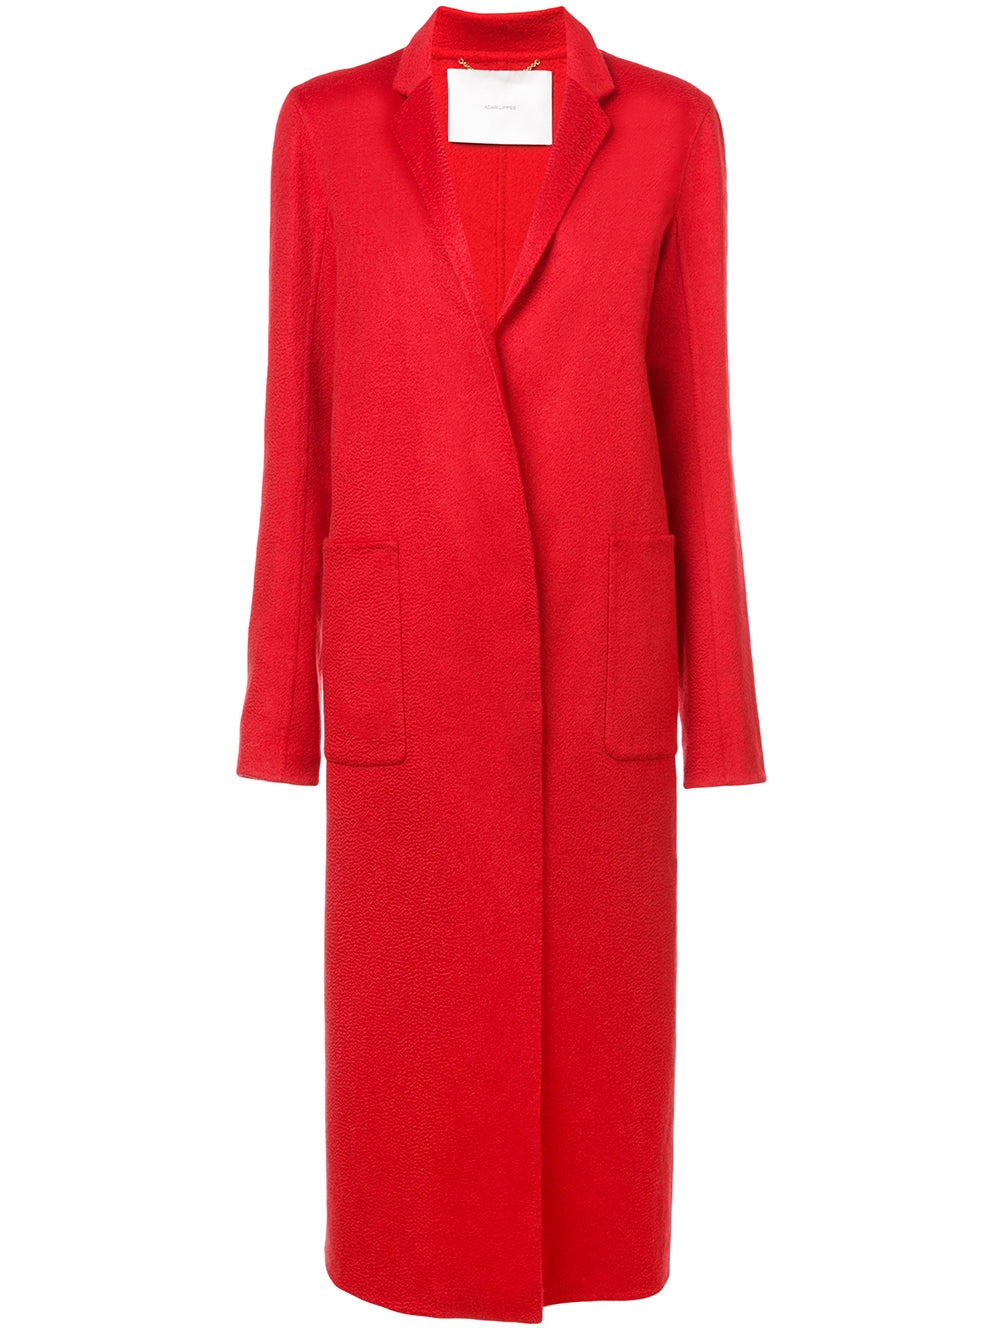 ZIBELLINE CASHMERE COAT WITH POCKETS